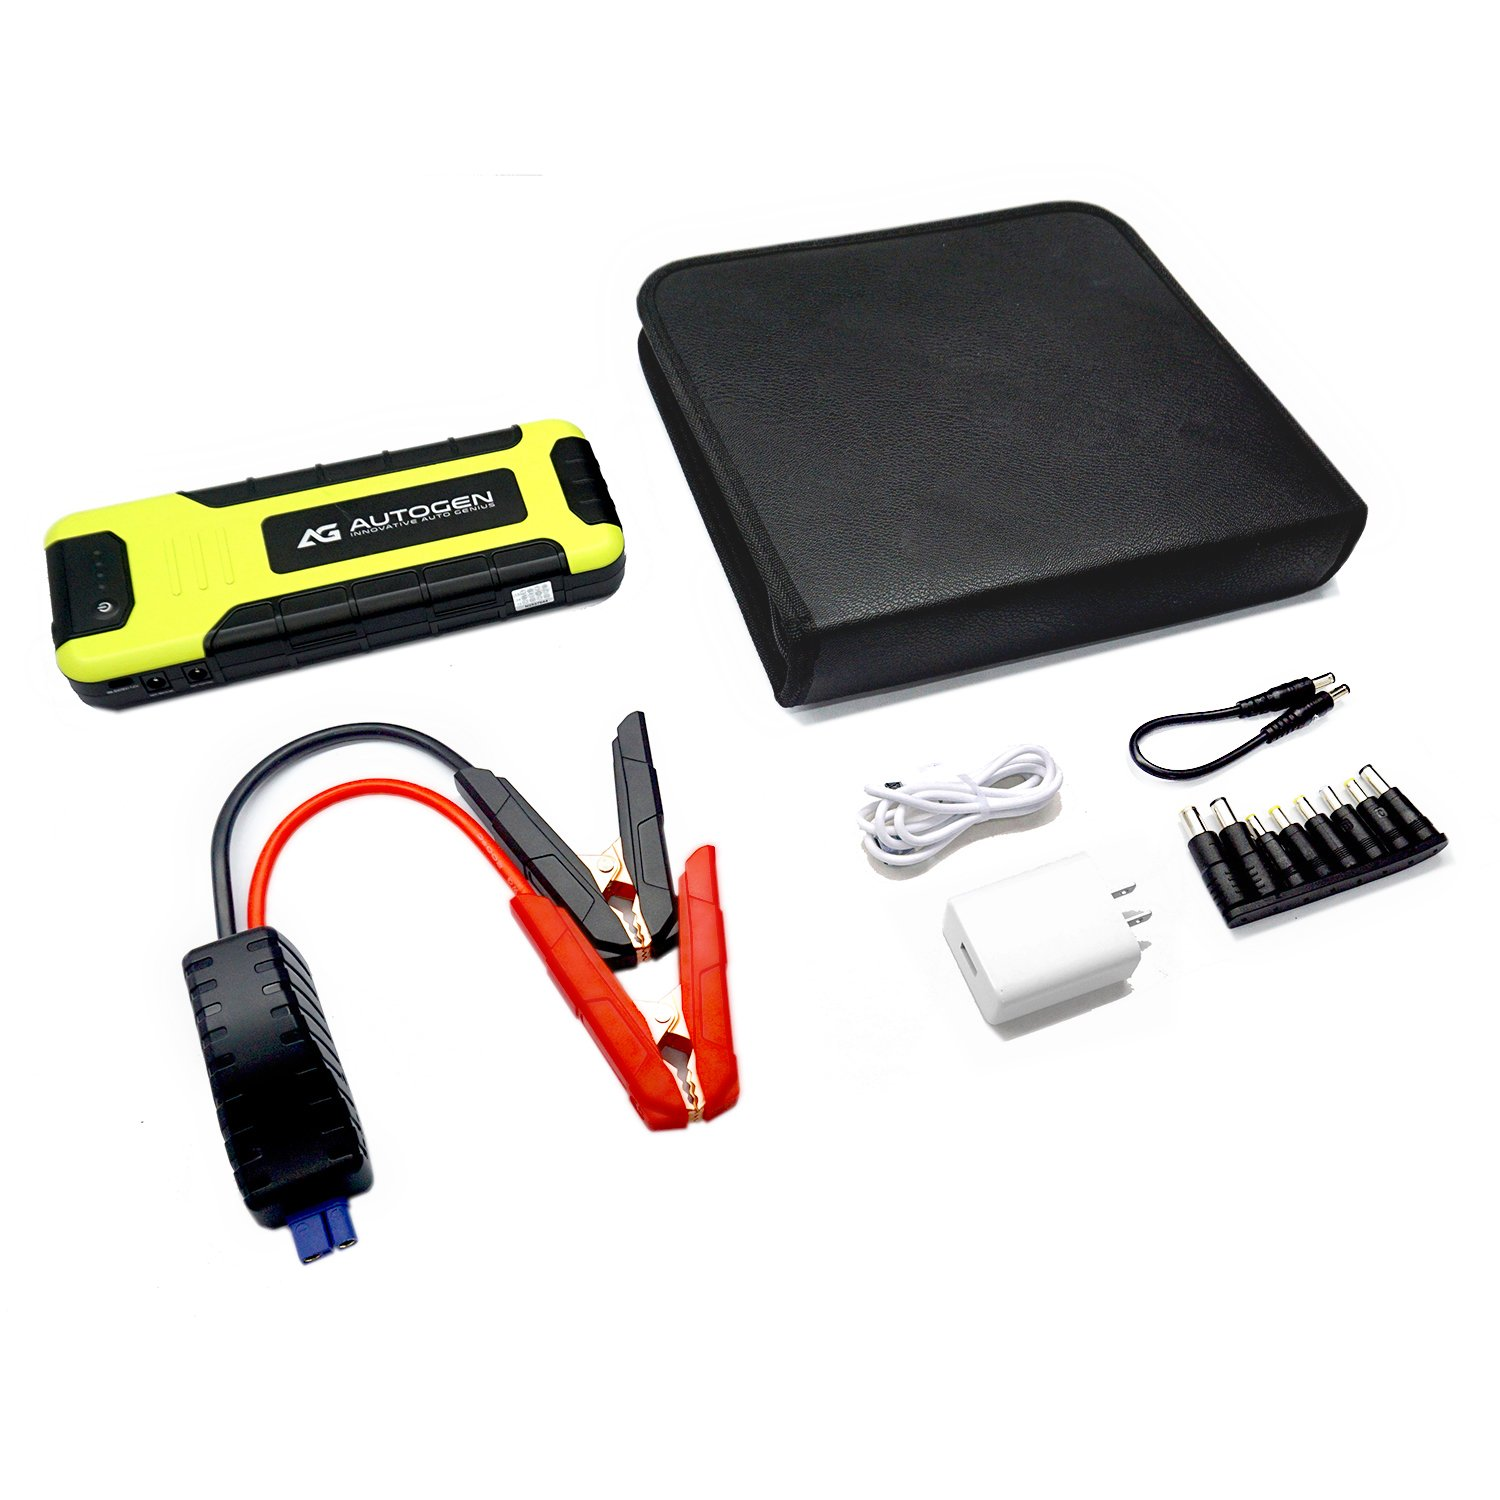 AUTOGEN 2000A Peak Portable Jump Starter for Vehicles (up to 8.0L Gas or 6.5L Diesel) & Quick Charge 3.0 Power Charger, with Mistake-Proof Intelligent Clamps for Cars Boats RVs & Mowers by AUTOGEN (Image #7)